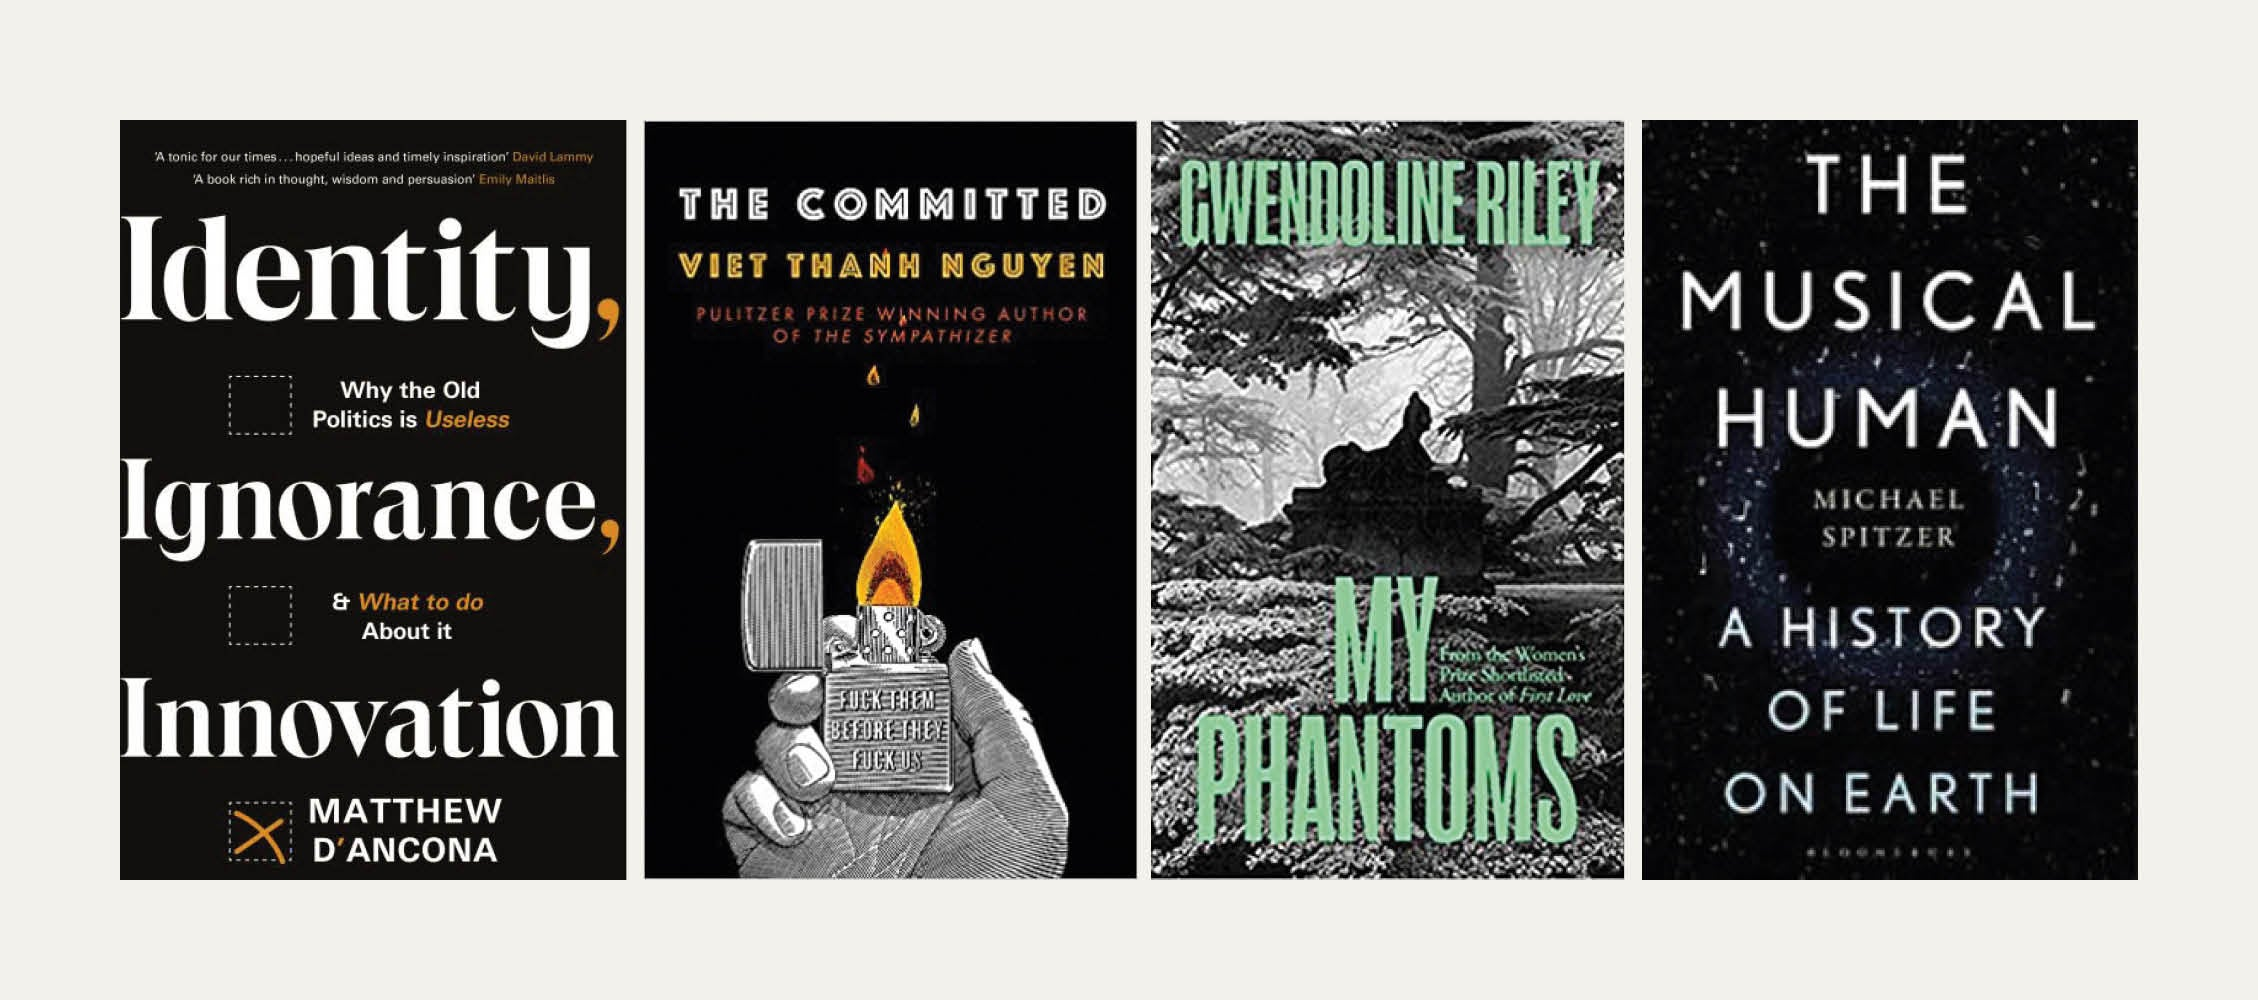 Reviewed in Short: New books by Gwendoline Riley, Viet Thanh Nguyen, Michael Spitzer and Matthew d'Ancona